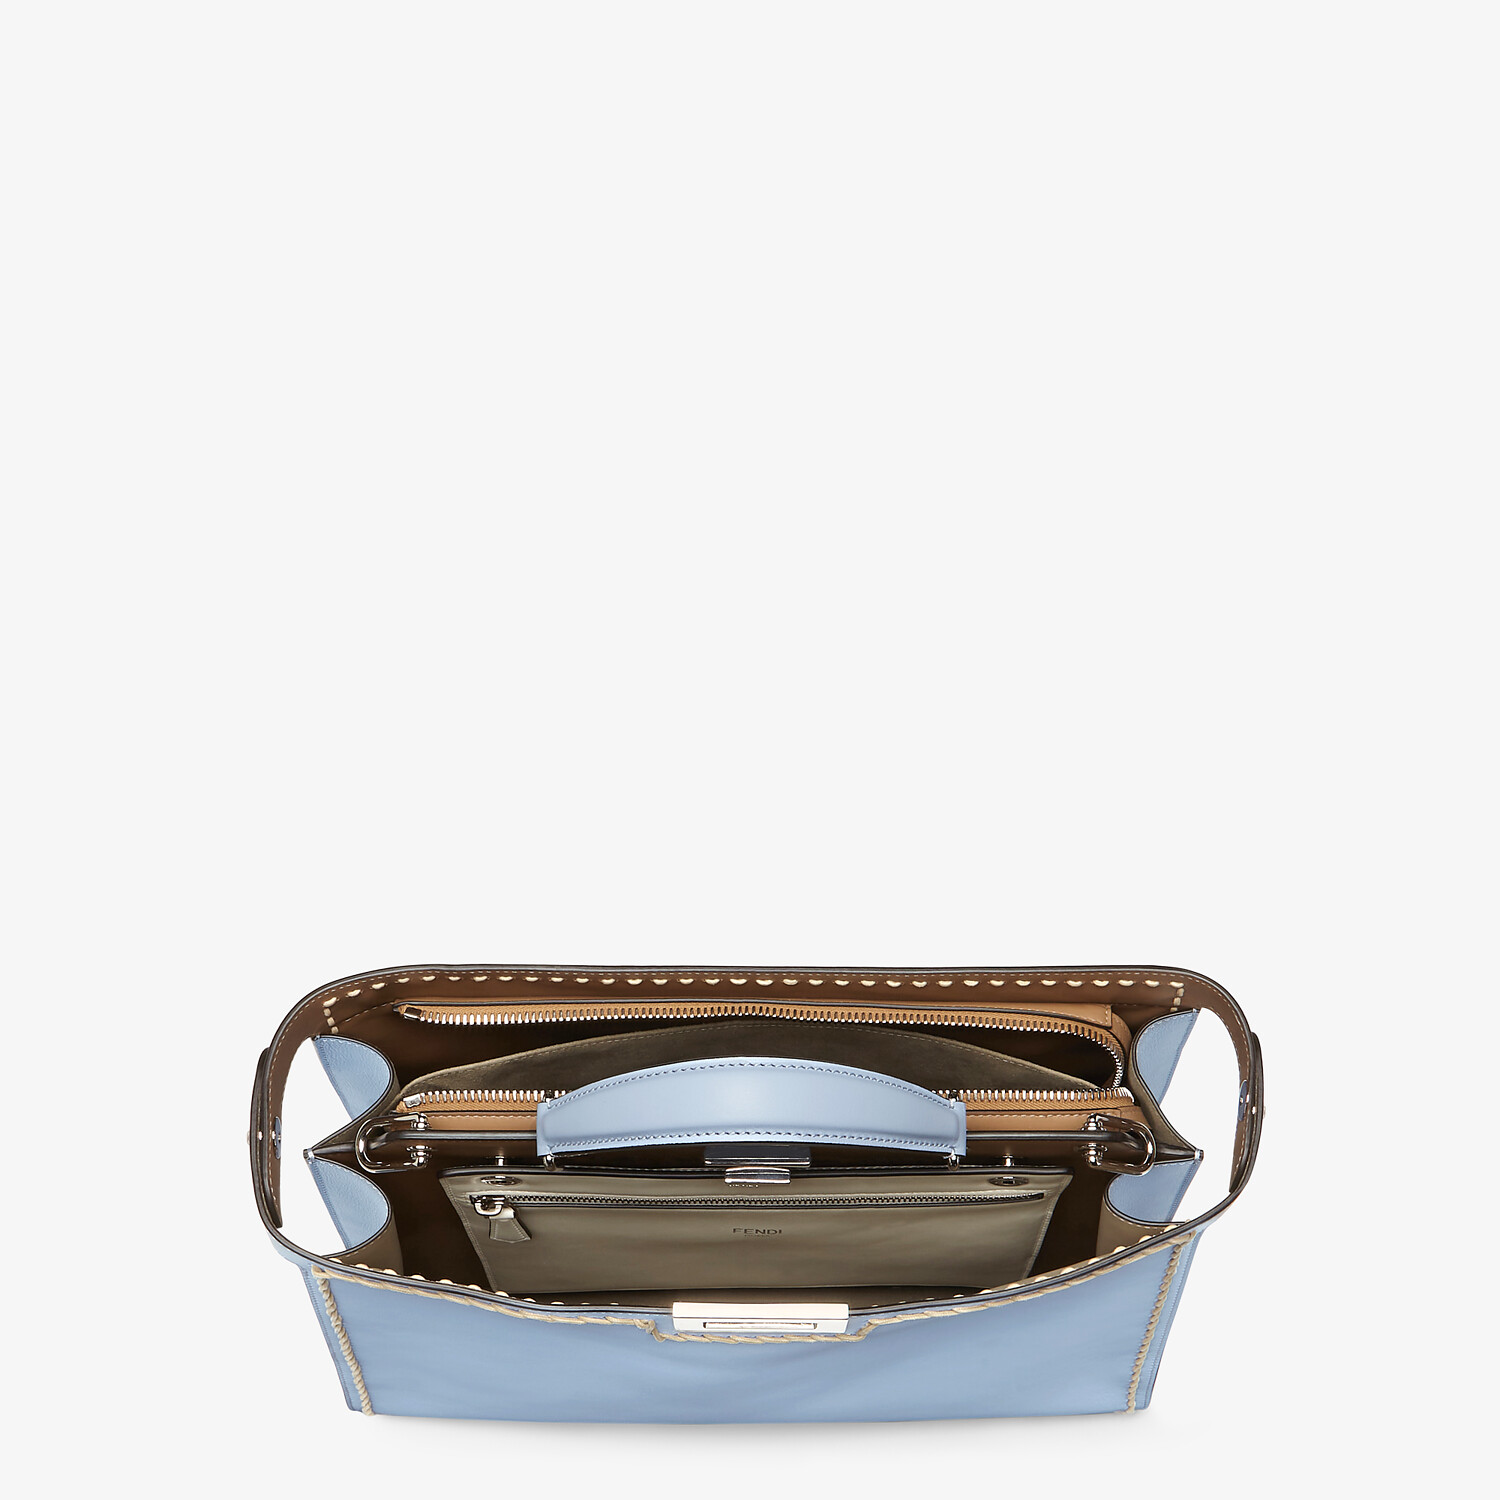 FENDI MEDIUM PEEKABOO ISEEU - Light blue leather bag - view 5 detail